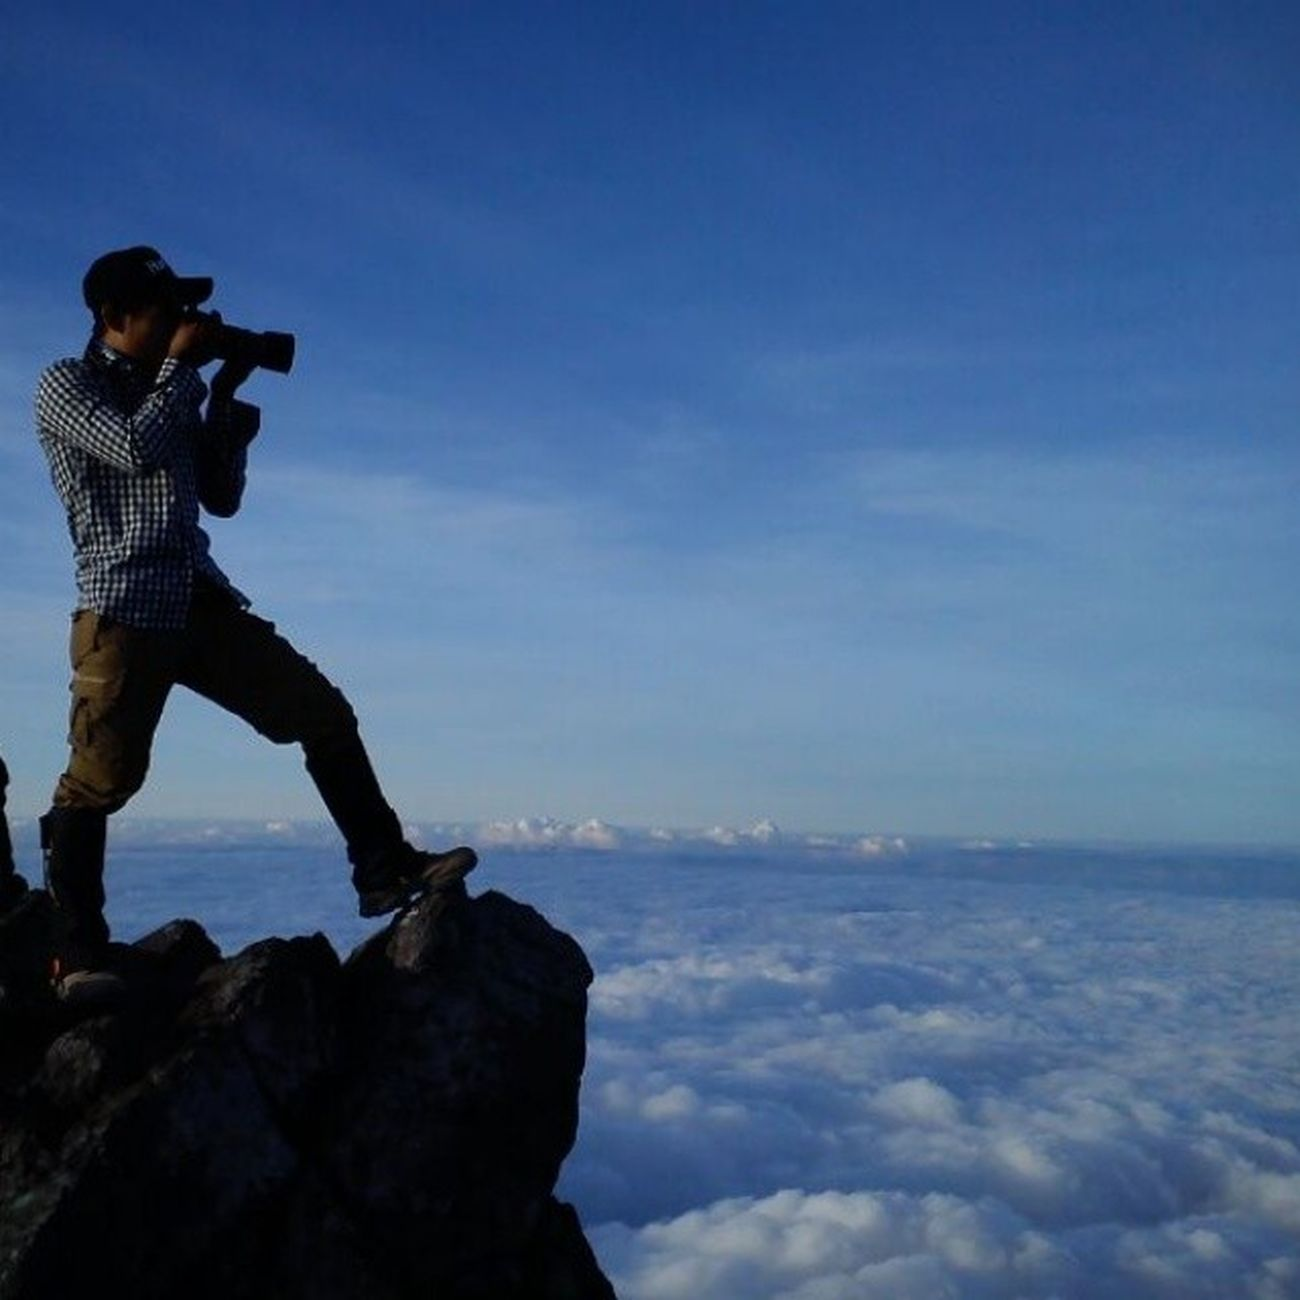 This is my soul my life.... My trip my adventure.... Bestskyshot Bestshot Photography Kameraslrgue naturelovers natureinside instapicture indonesiagetaway framedbynature loveadventure lovenature skyscraper skyhigh skylovers skyland instagallery instanaturefriends instanaturefriends likeforlike like4like